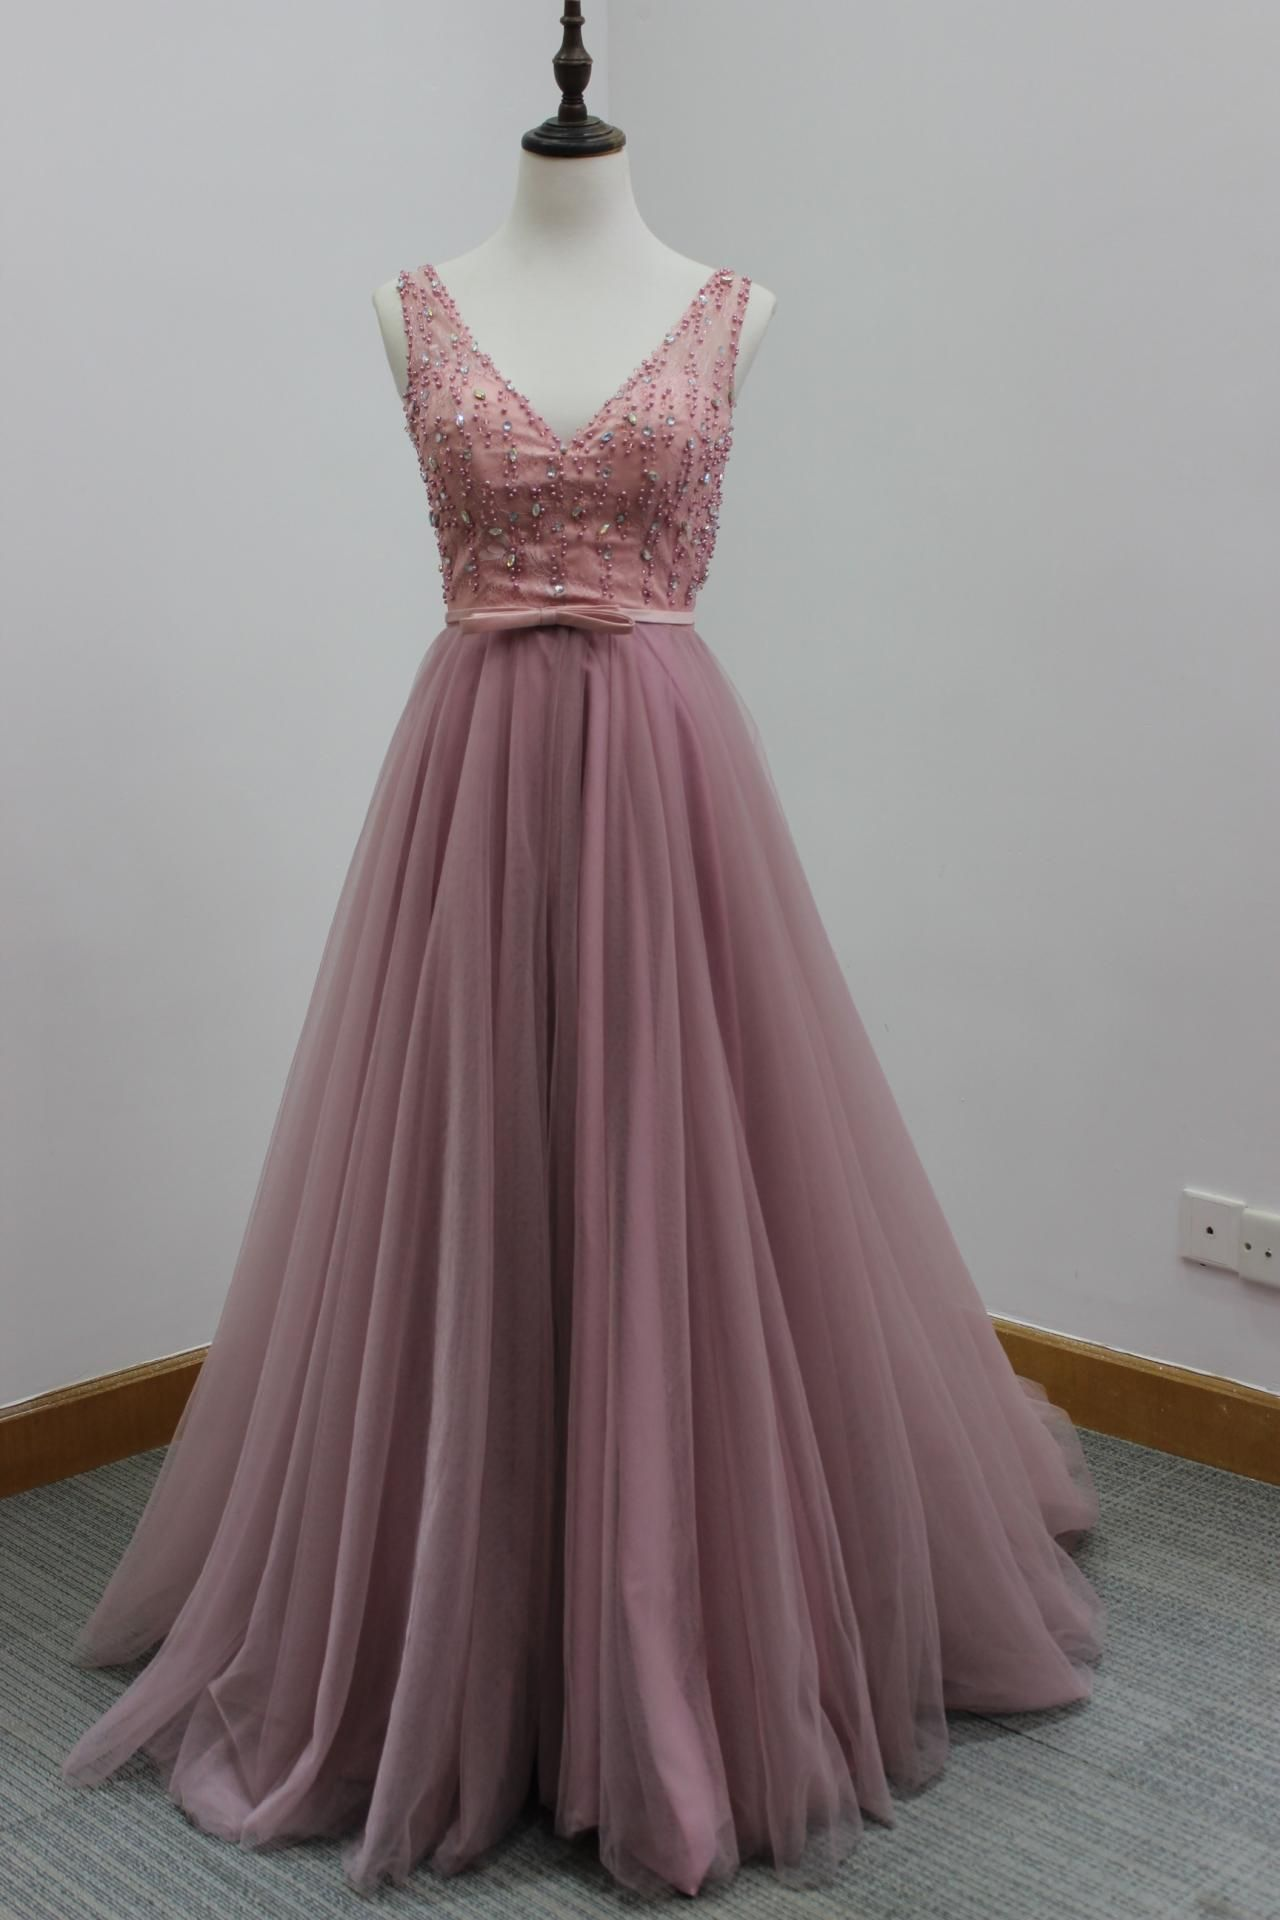 Pink floor length tulle formal gown featuring sleeveless plunge v